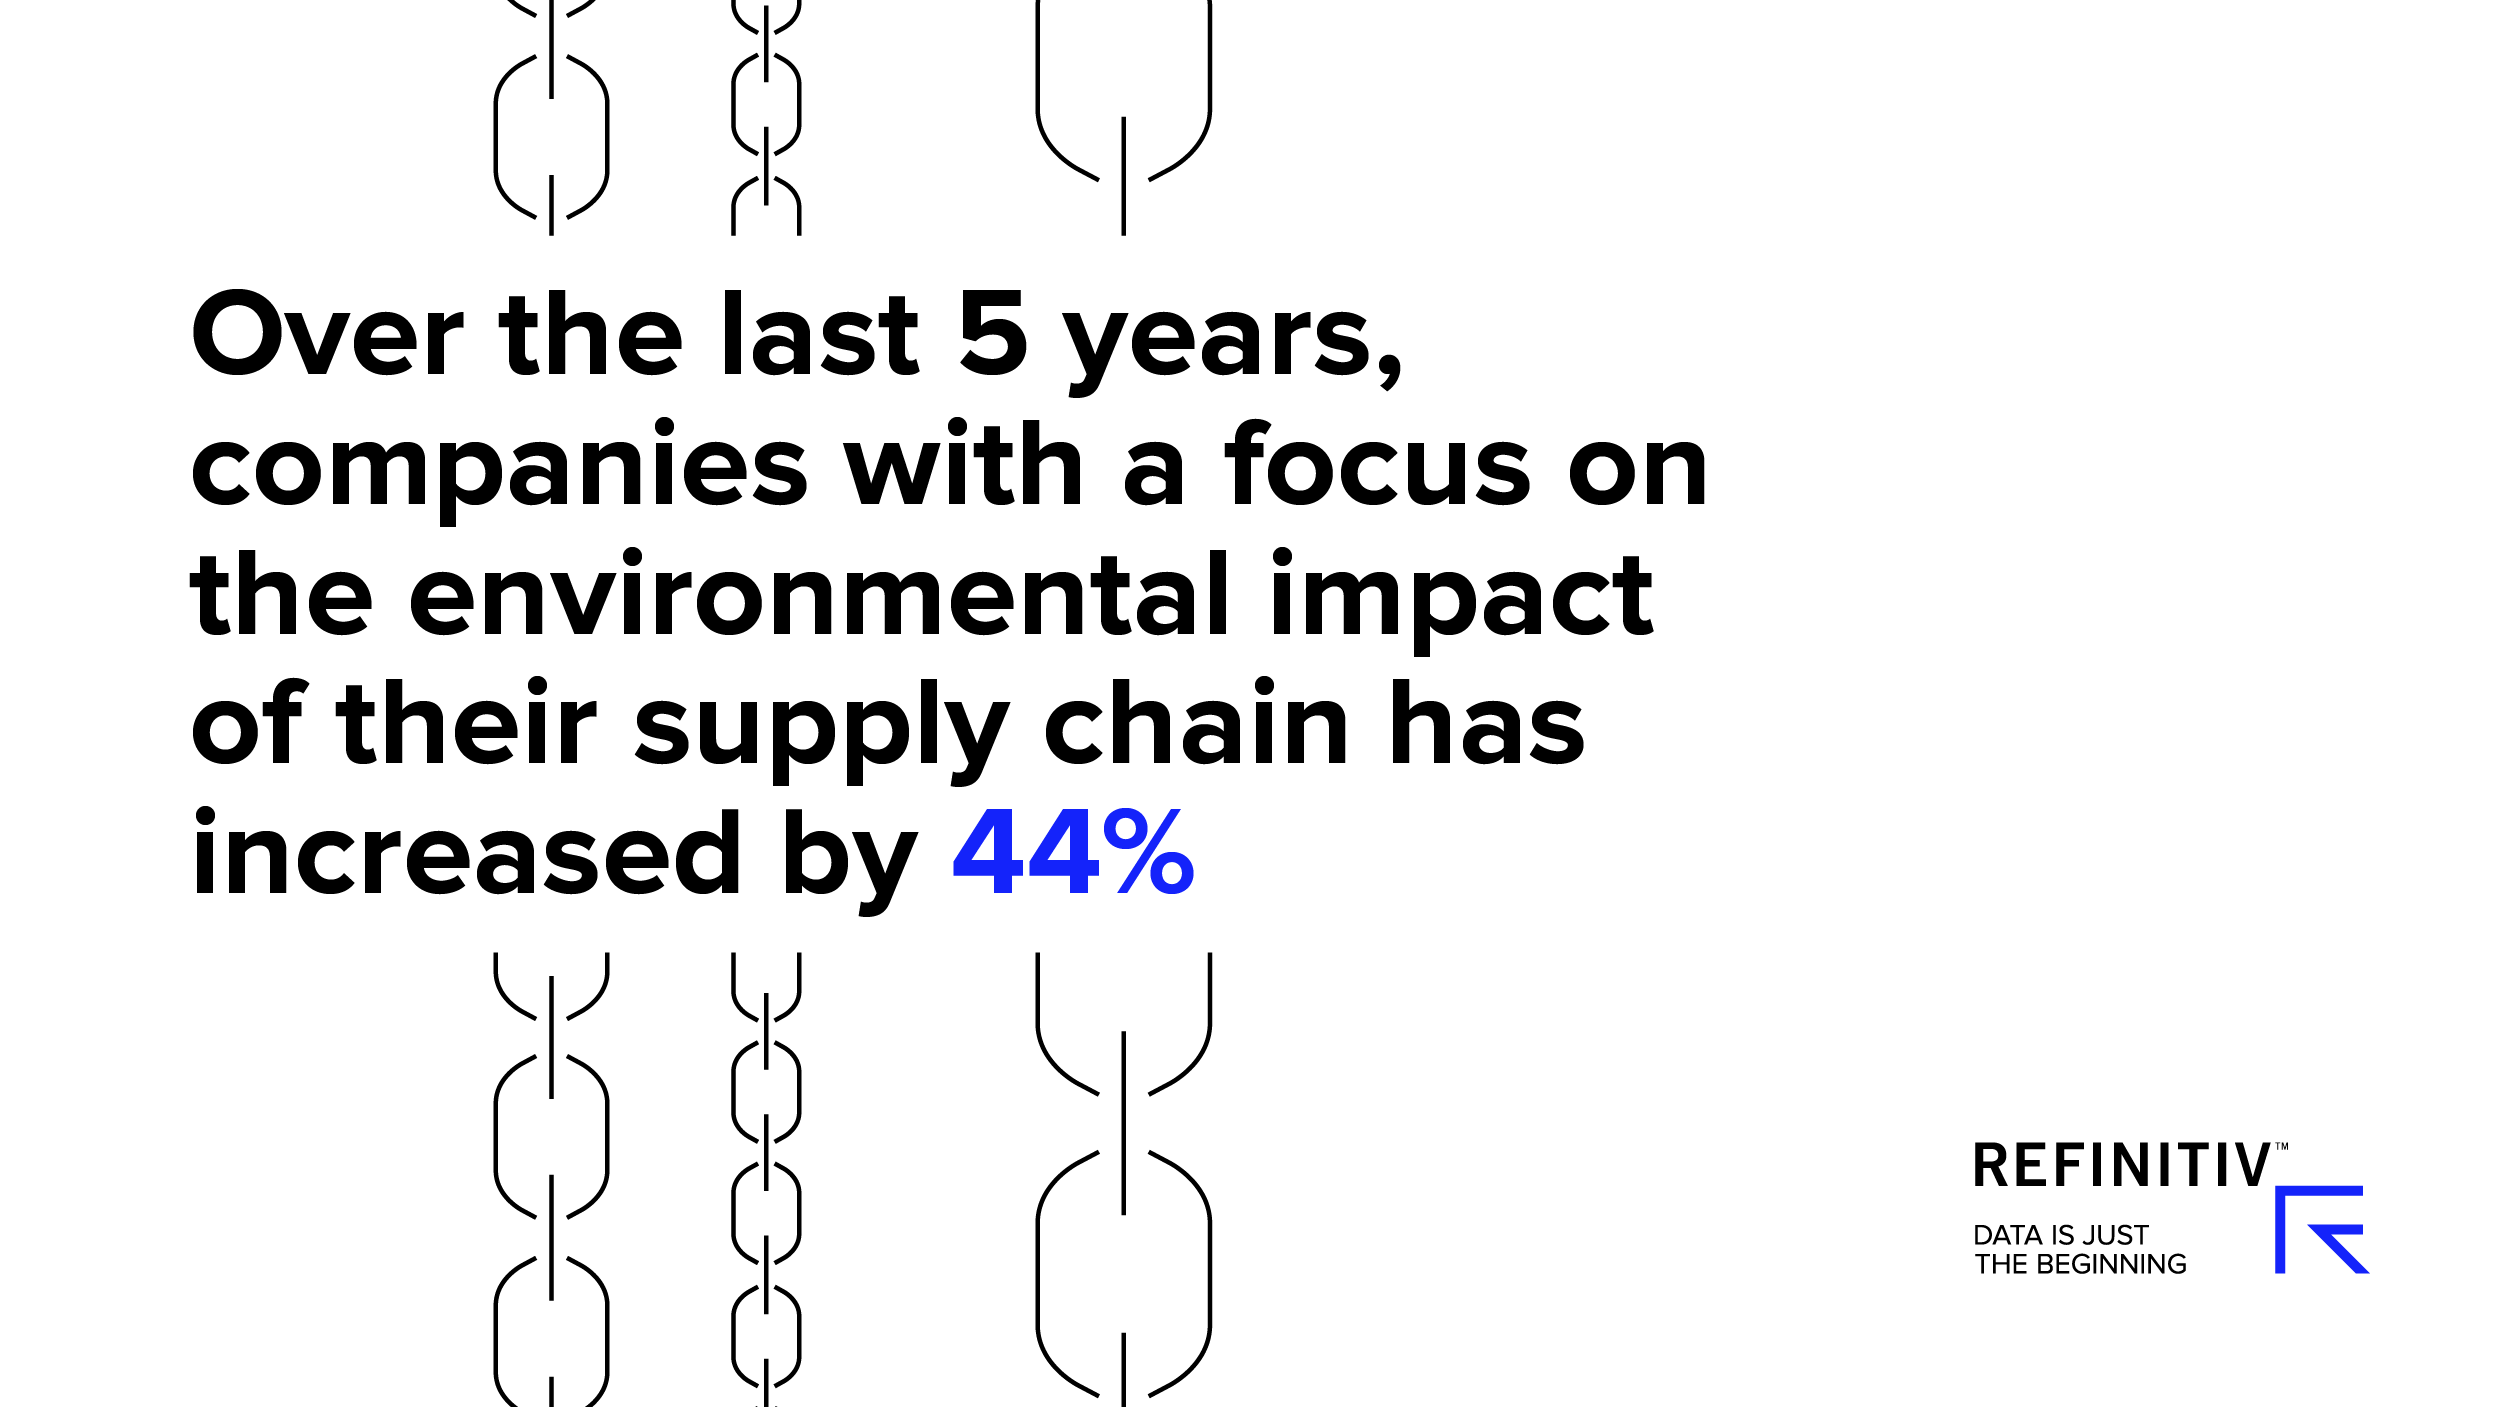 Over the last 5 years, companies with a focus on the environmental impact of their supply chain has increased by 44%